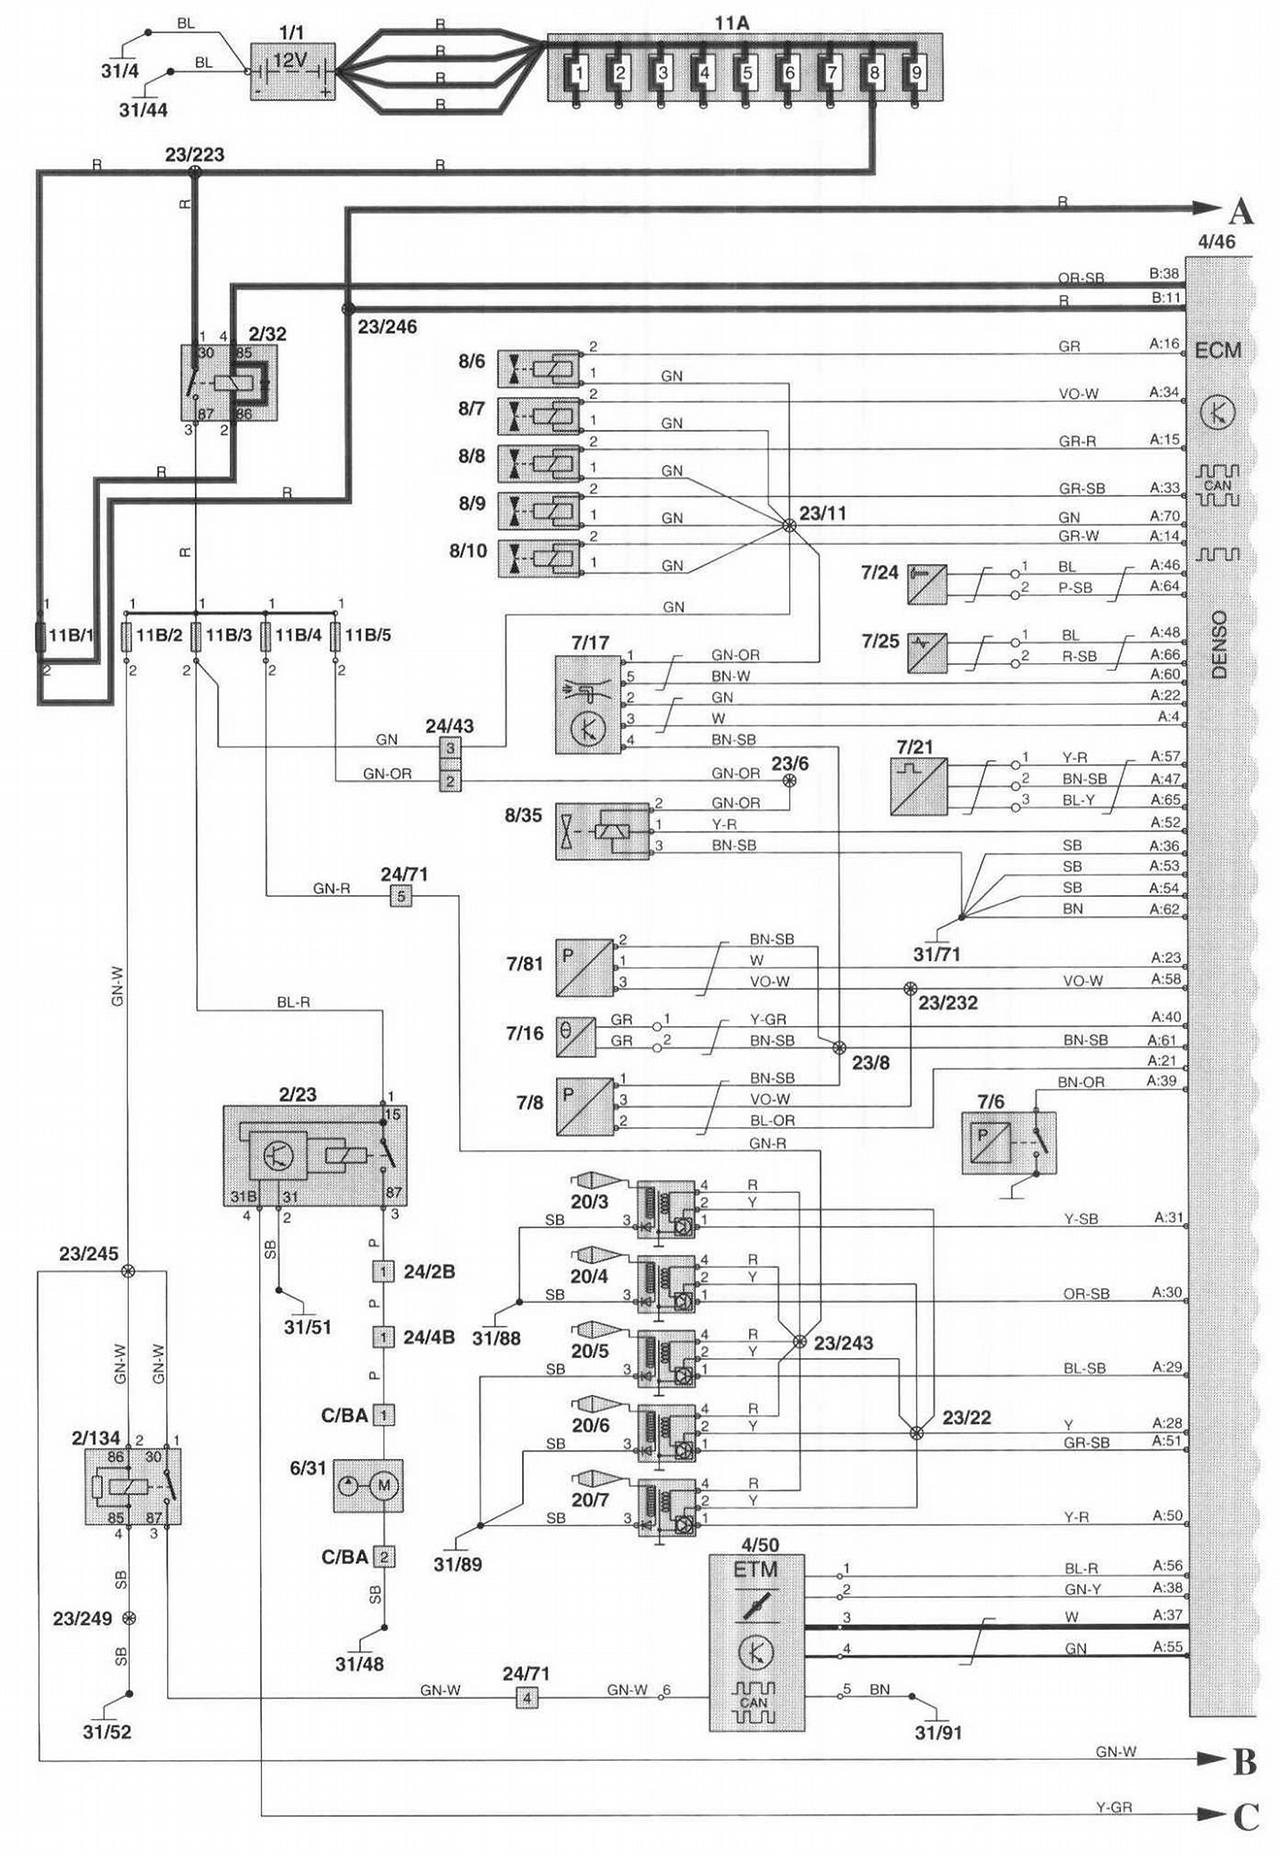 Volvo Wiring Diagram S80 Another Blog About Furthermore 2000 Buick Lesabre Radio Vnl Alternator Diagrams Ford F800 Stereo 1999